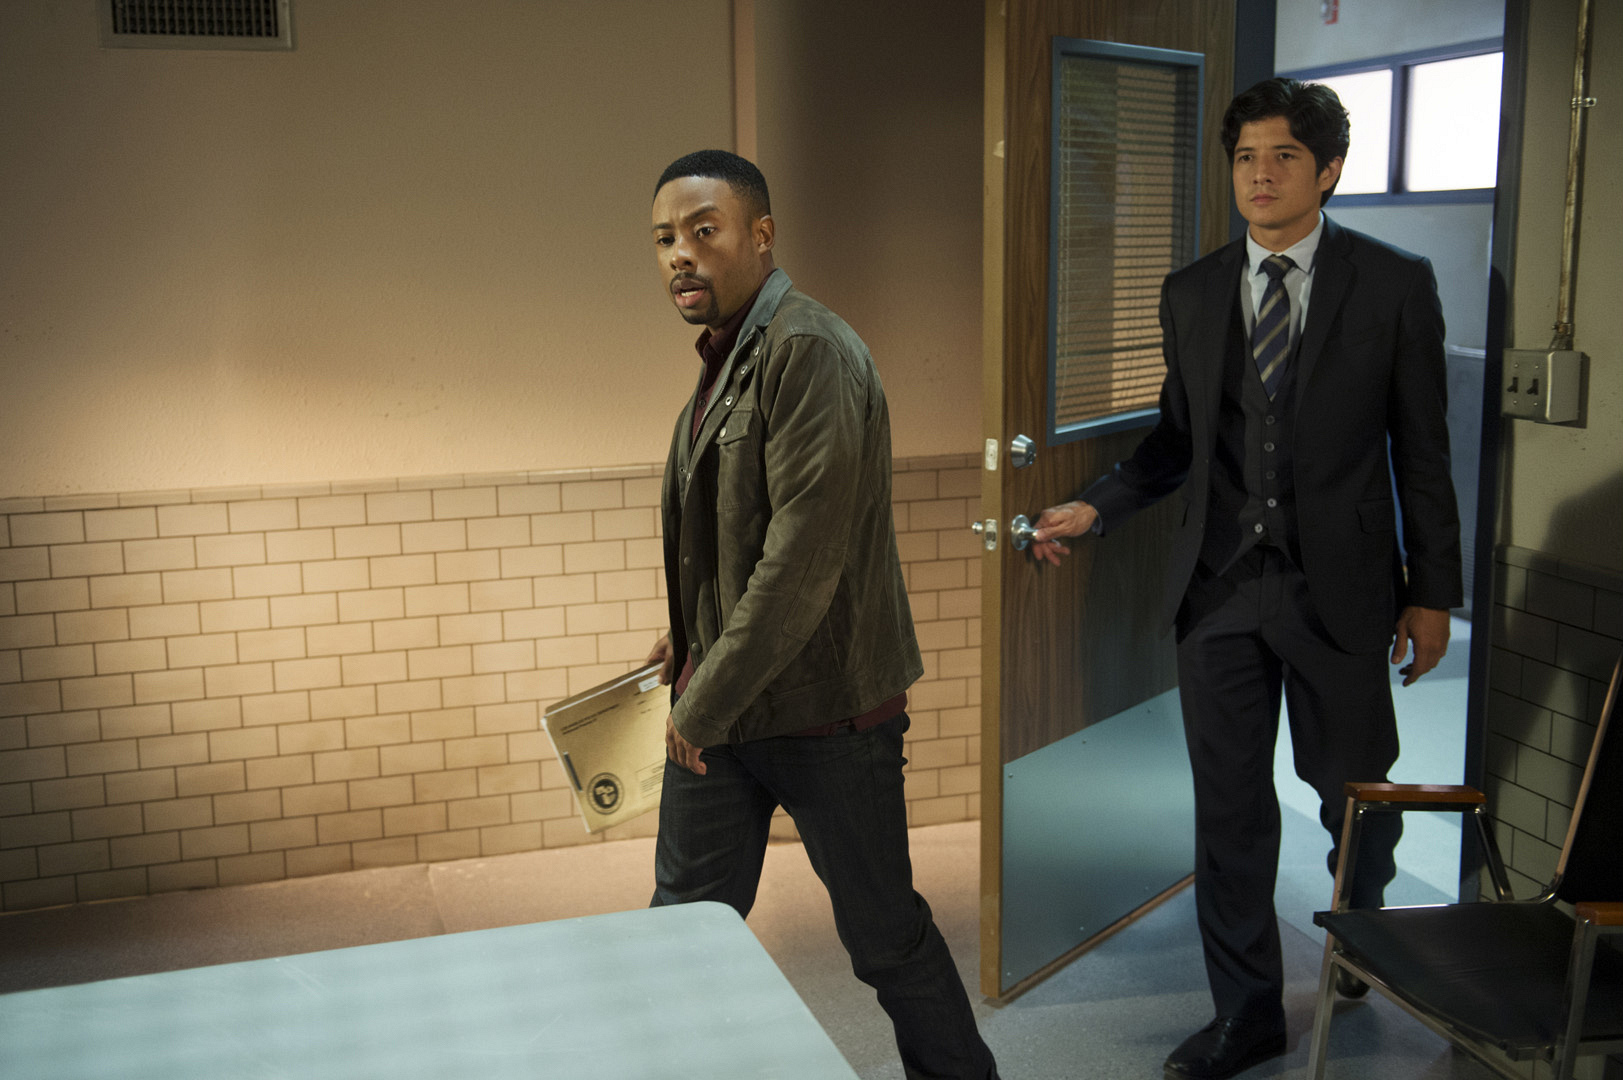 Carter leads the way into the interrogation room.